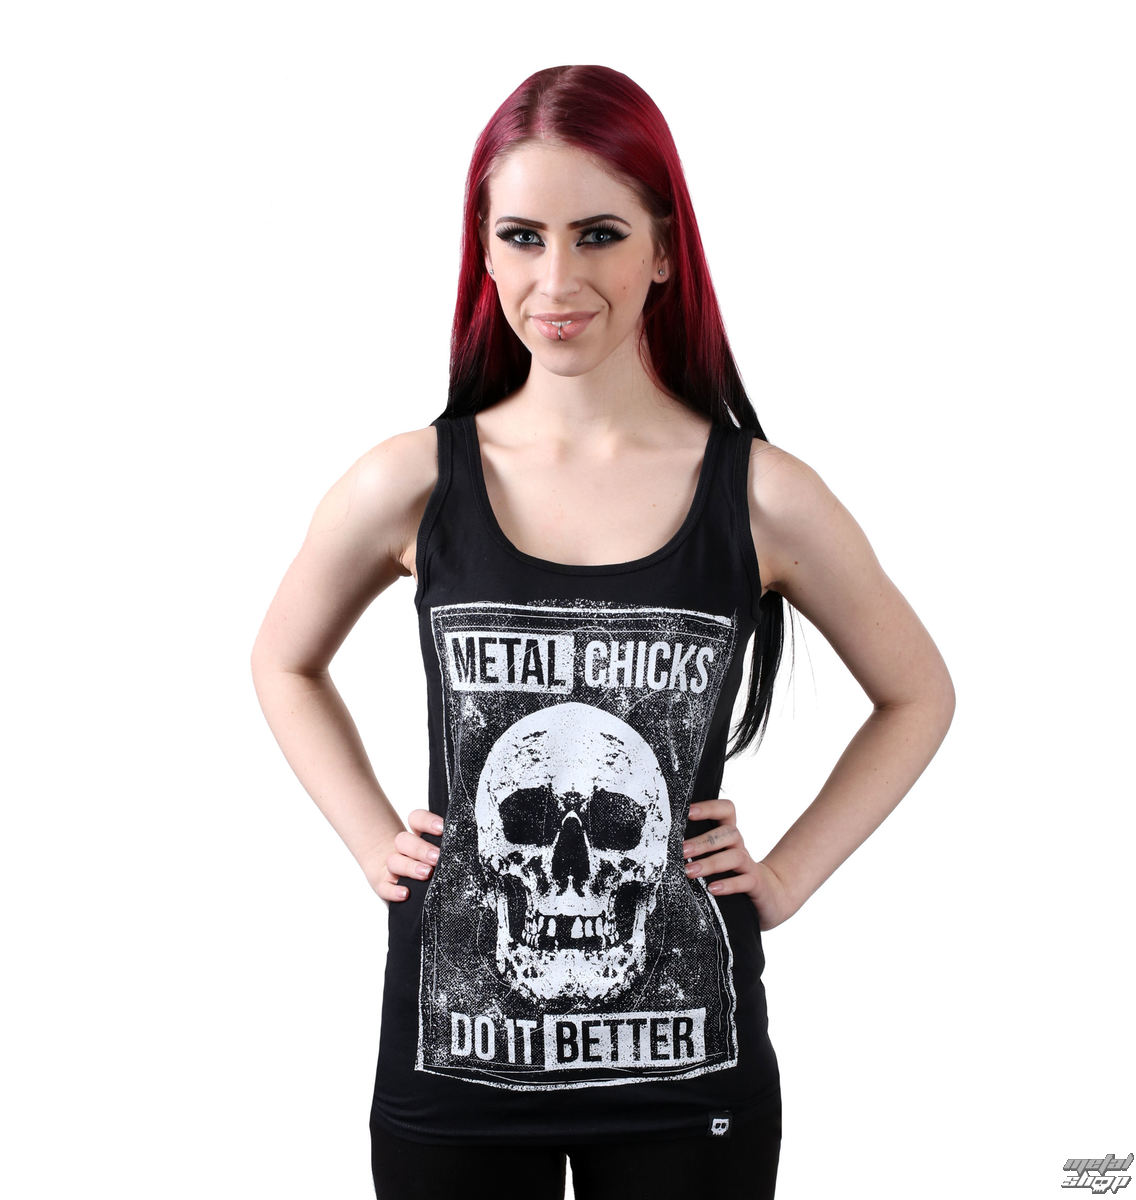 Damen Tanktop METAL CHICKS DO IT BETTER